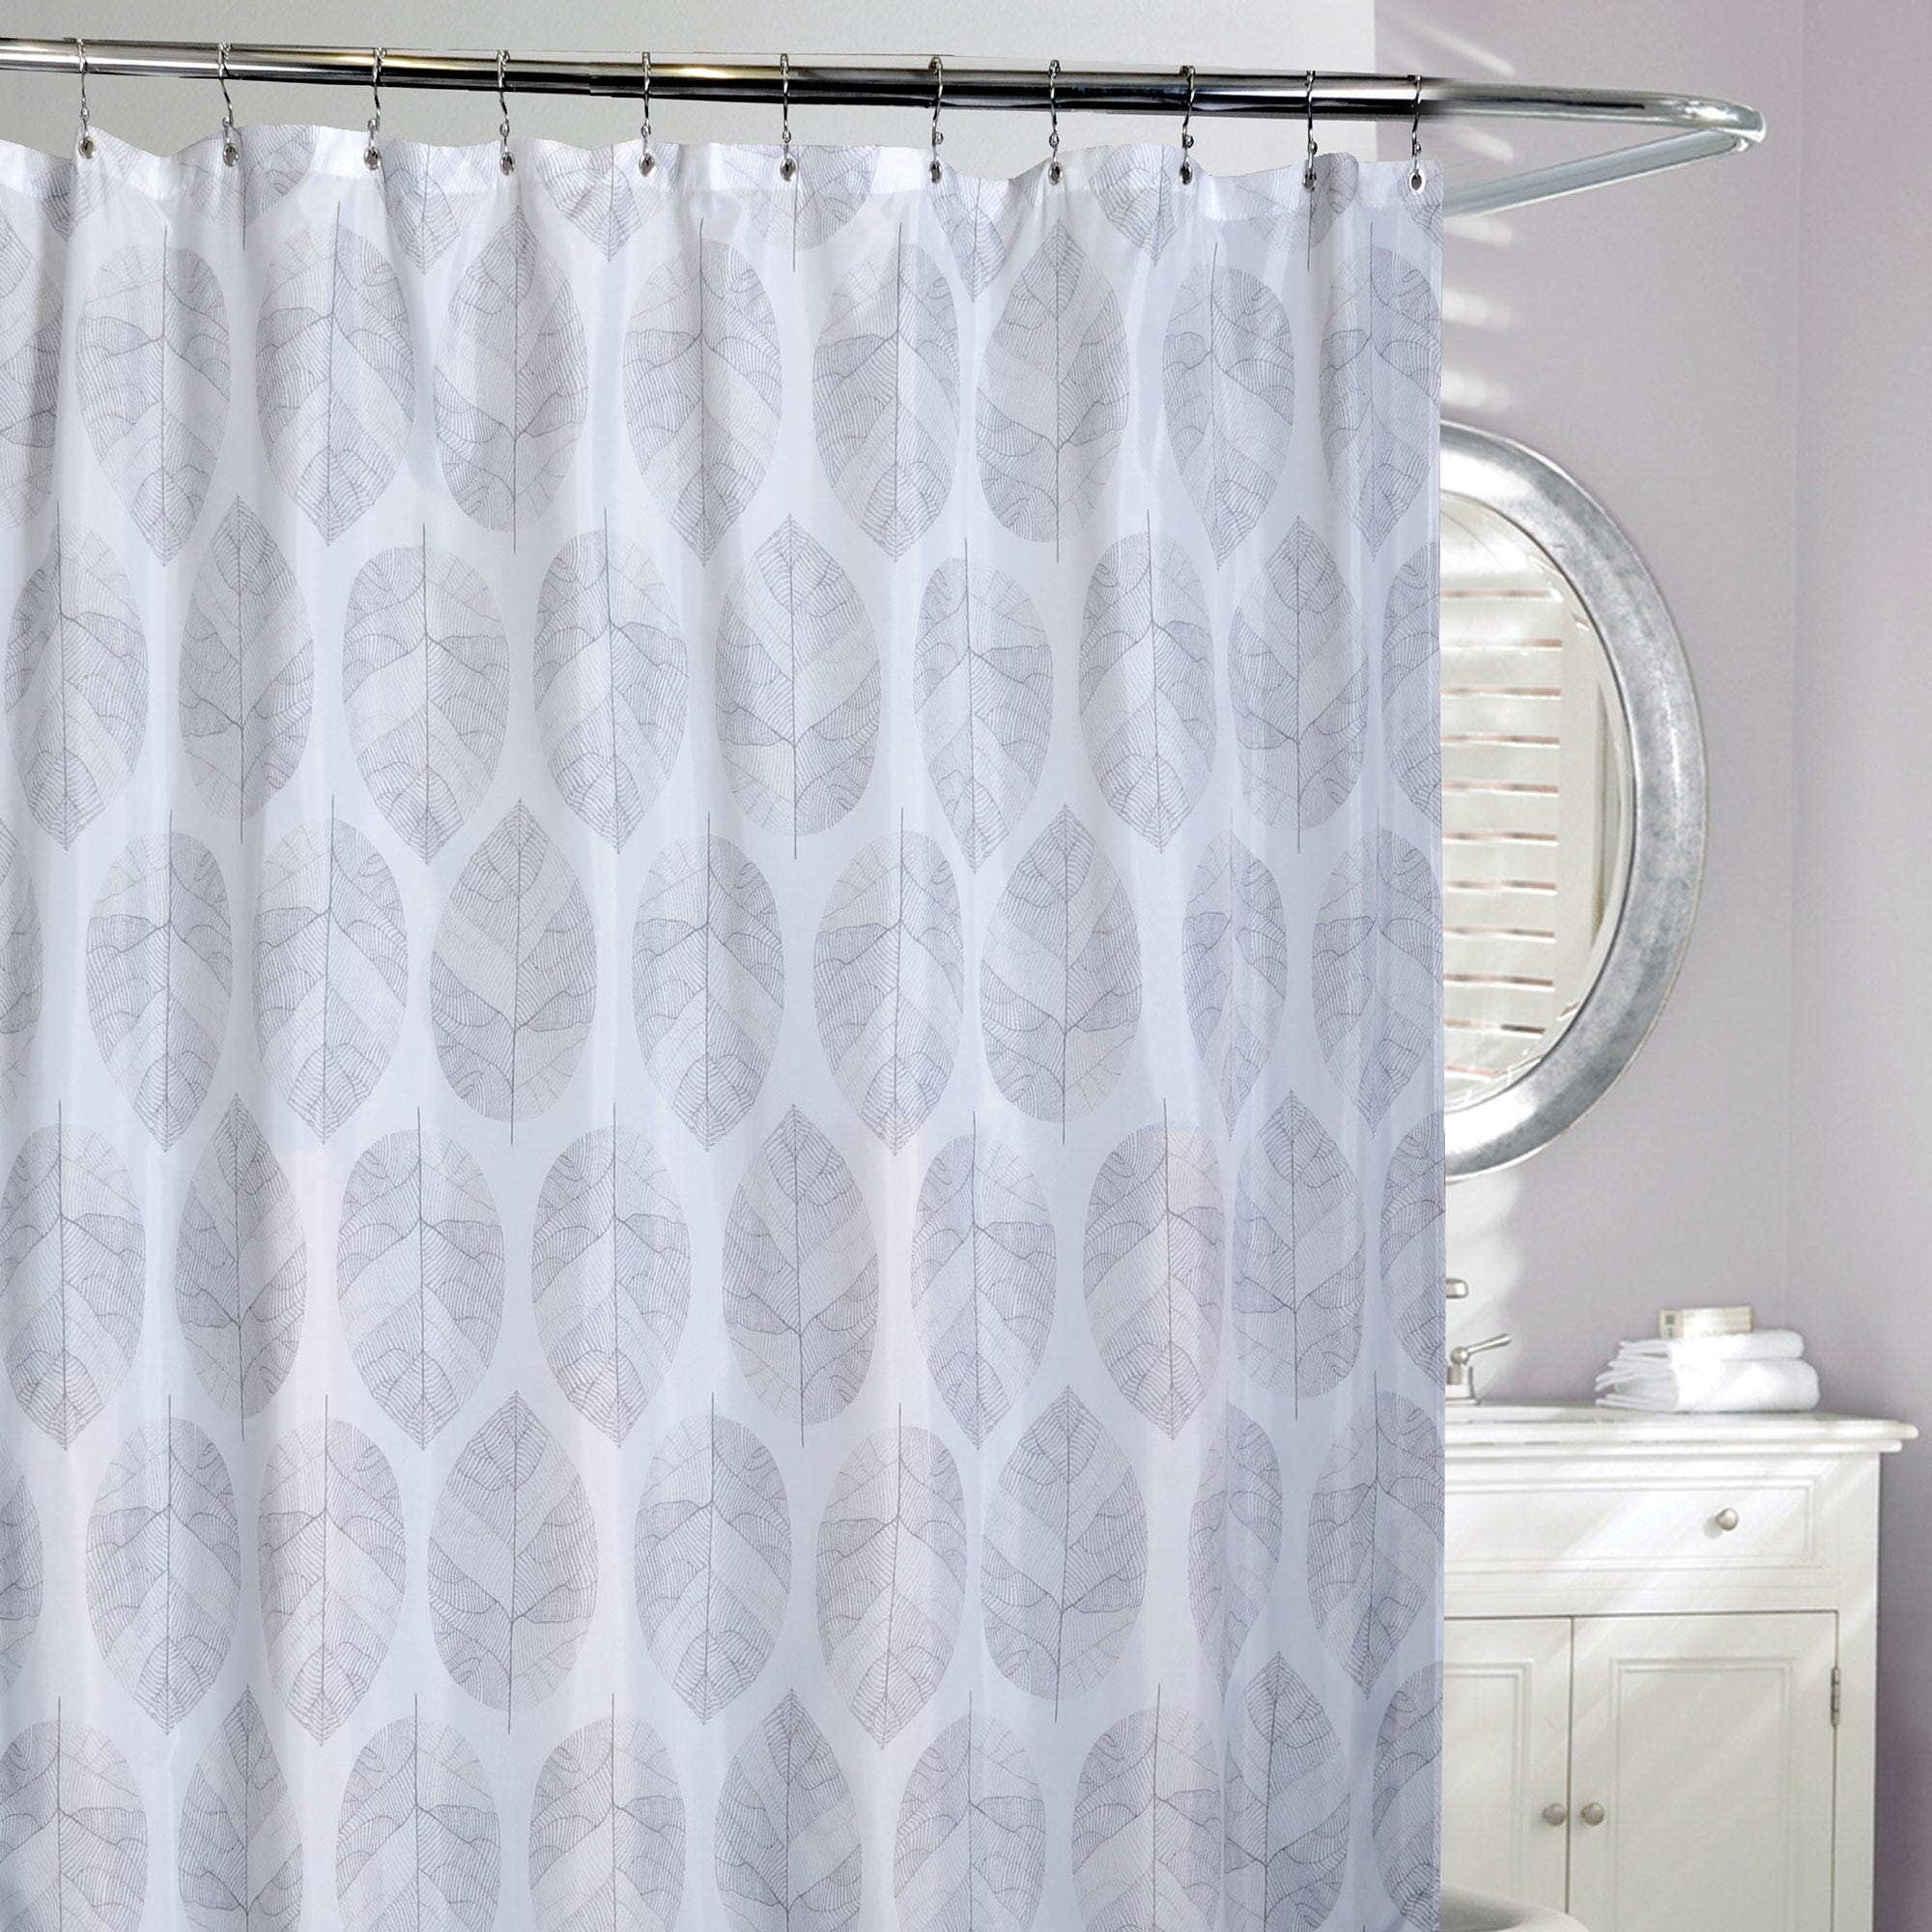 shower captains over s bedding product beige free bath on shipping curtain captain orders overstock croscill quarters